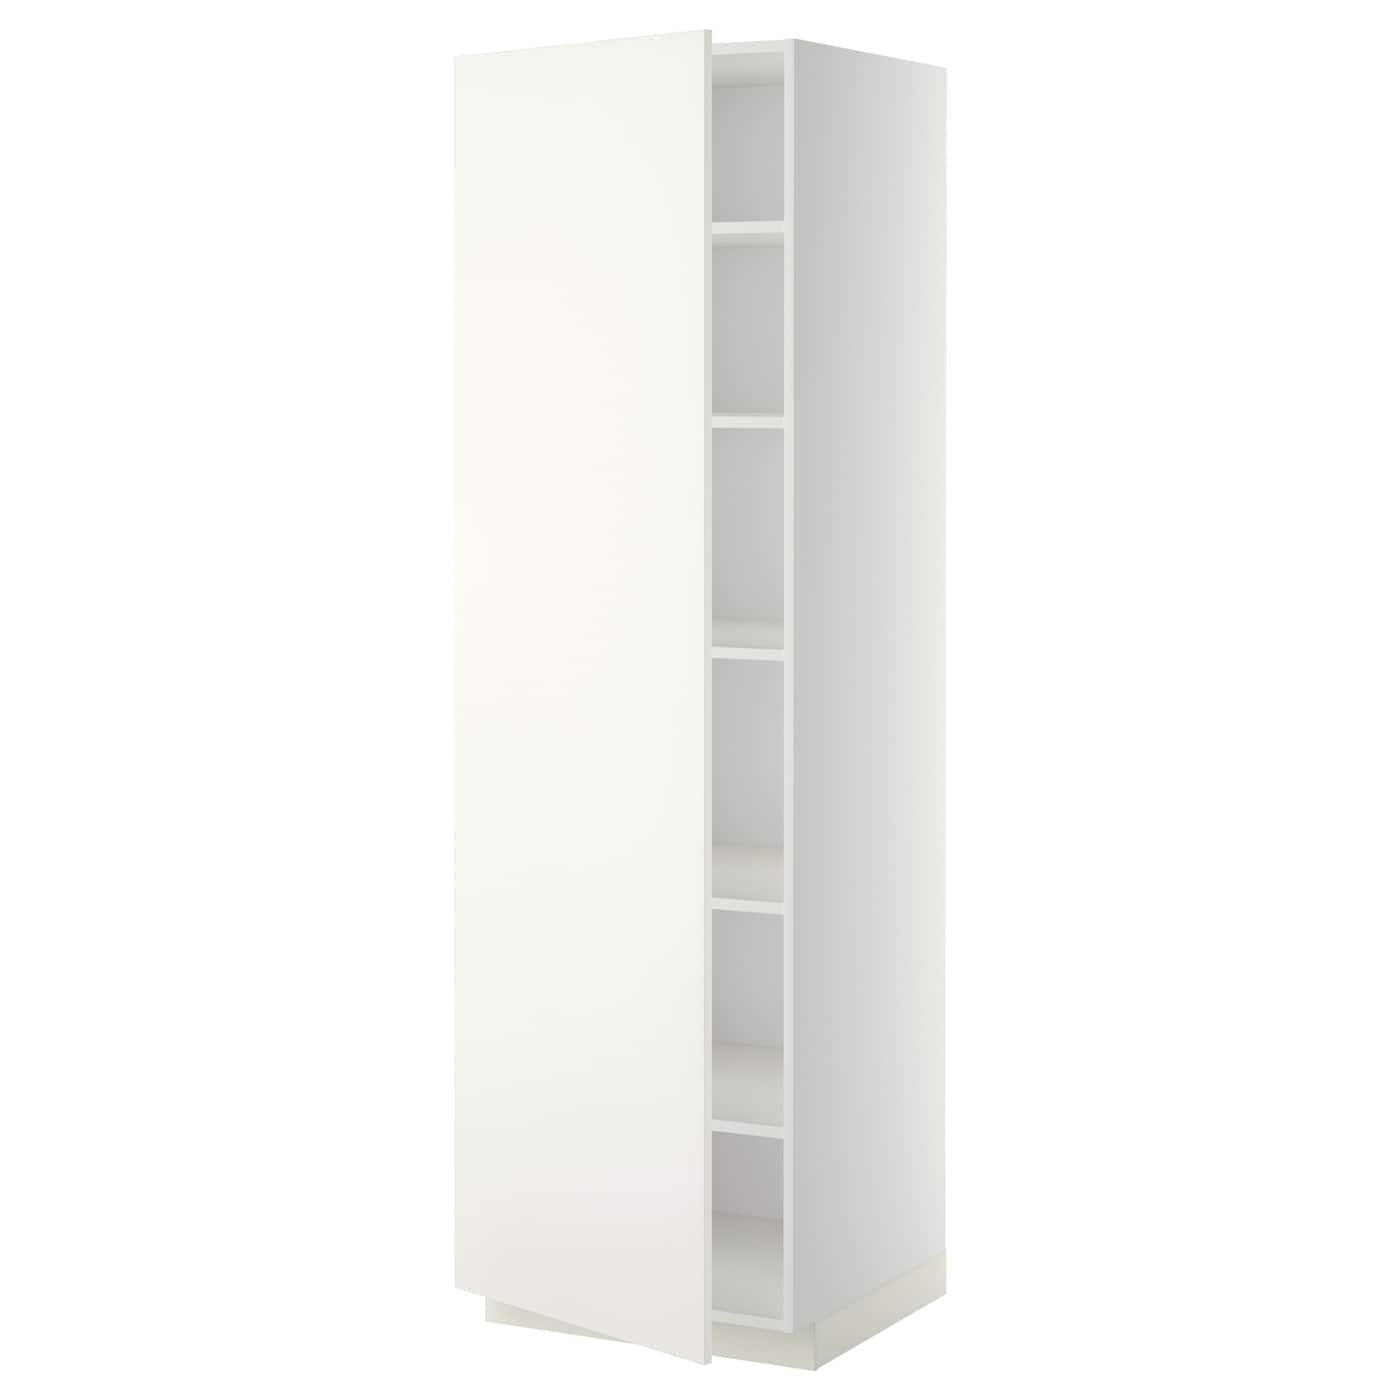 Metod High Cabinet With Shelves White H Ggeby White 60x60x200 Cm Ikea